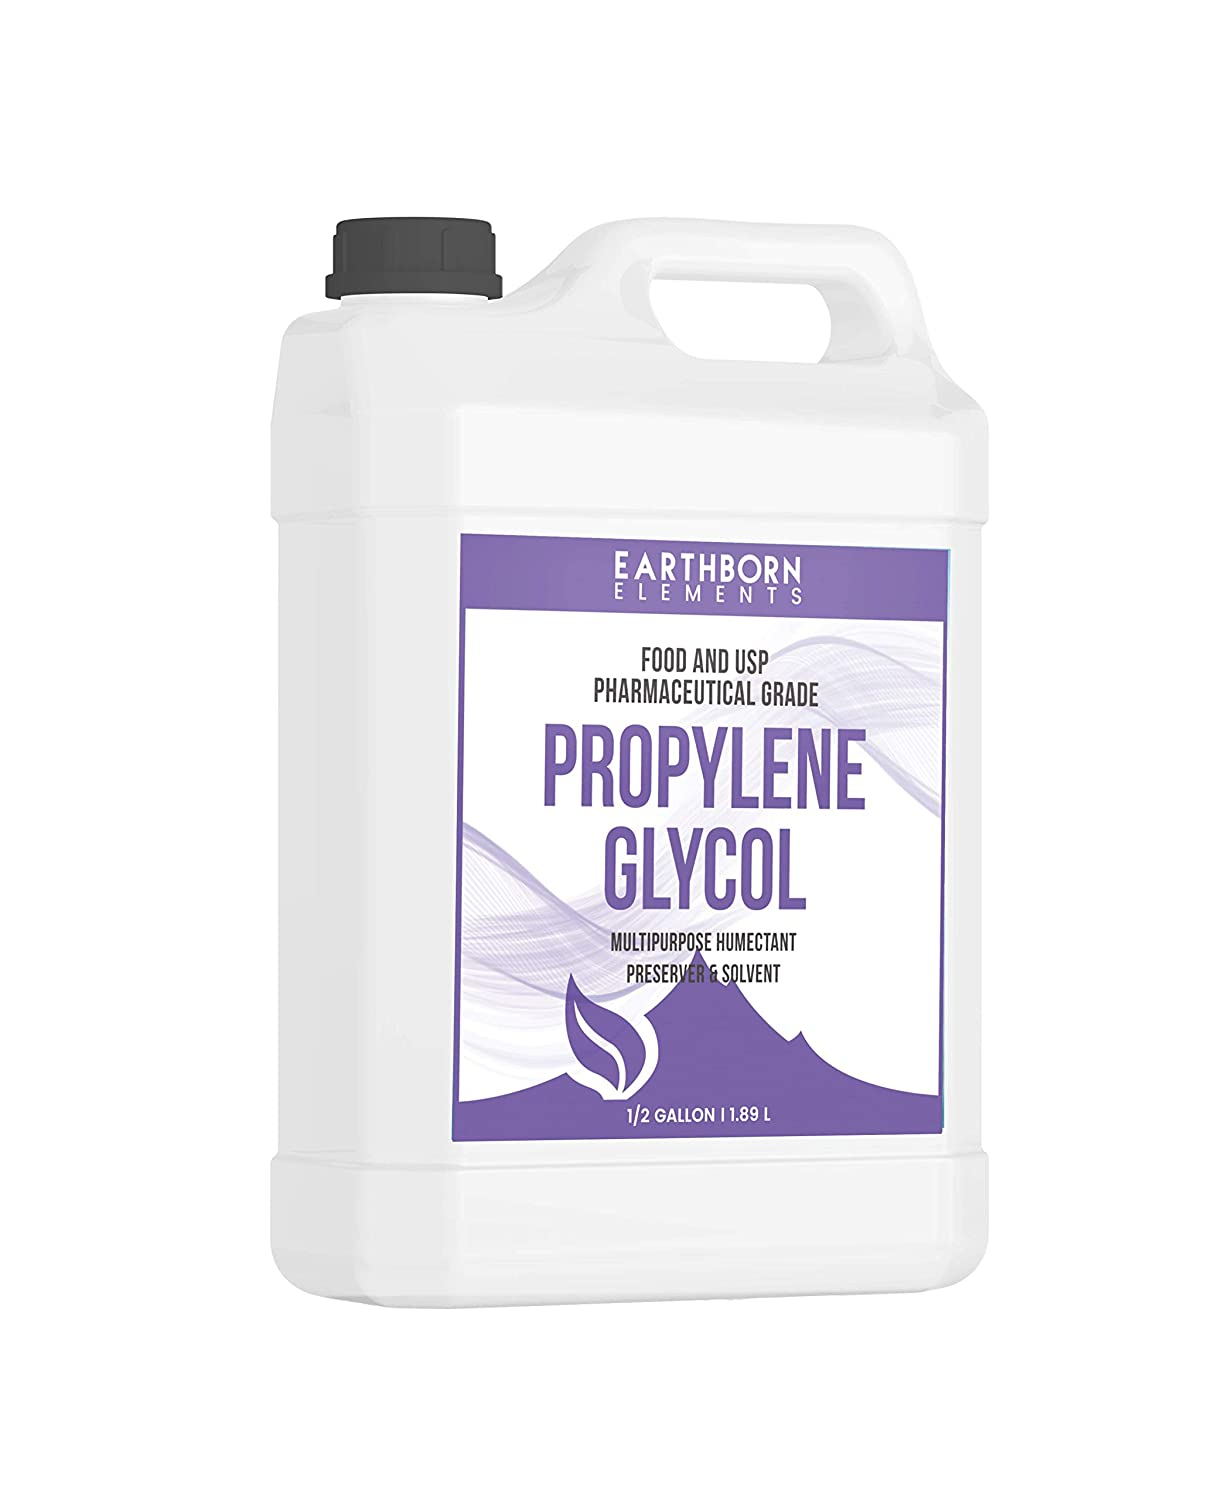 Propylene Glycol Half Gallon (64 oz.) by Earthborn Elements, 100% Pure, Food & Pharmaceutical Grade, Hypoallergenic Moisturizer & Skin Cleanser